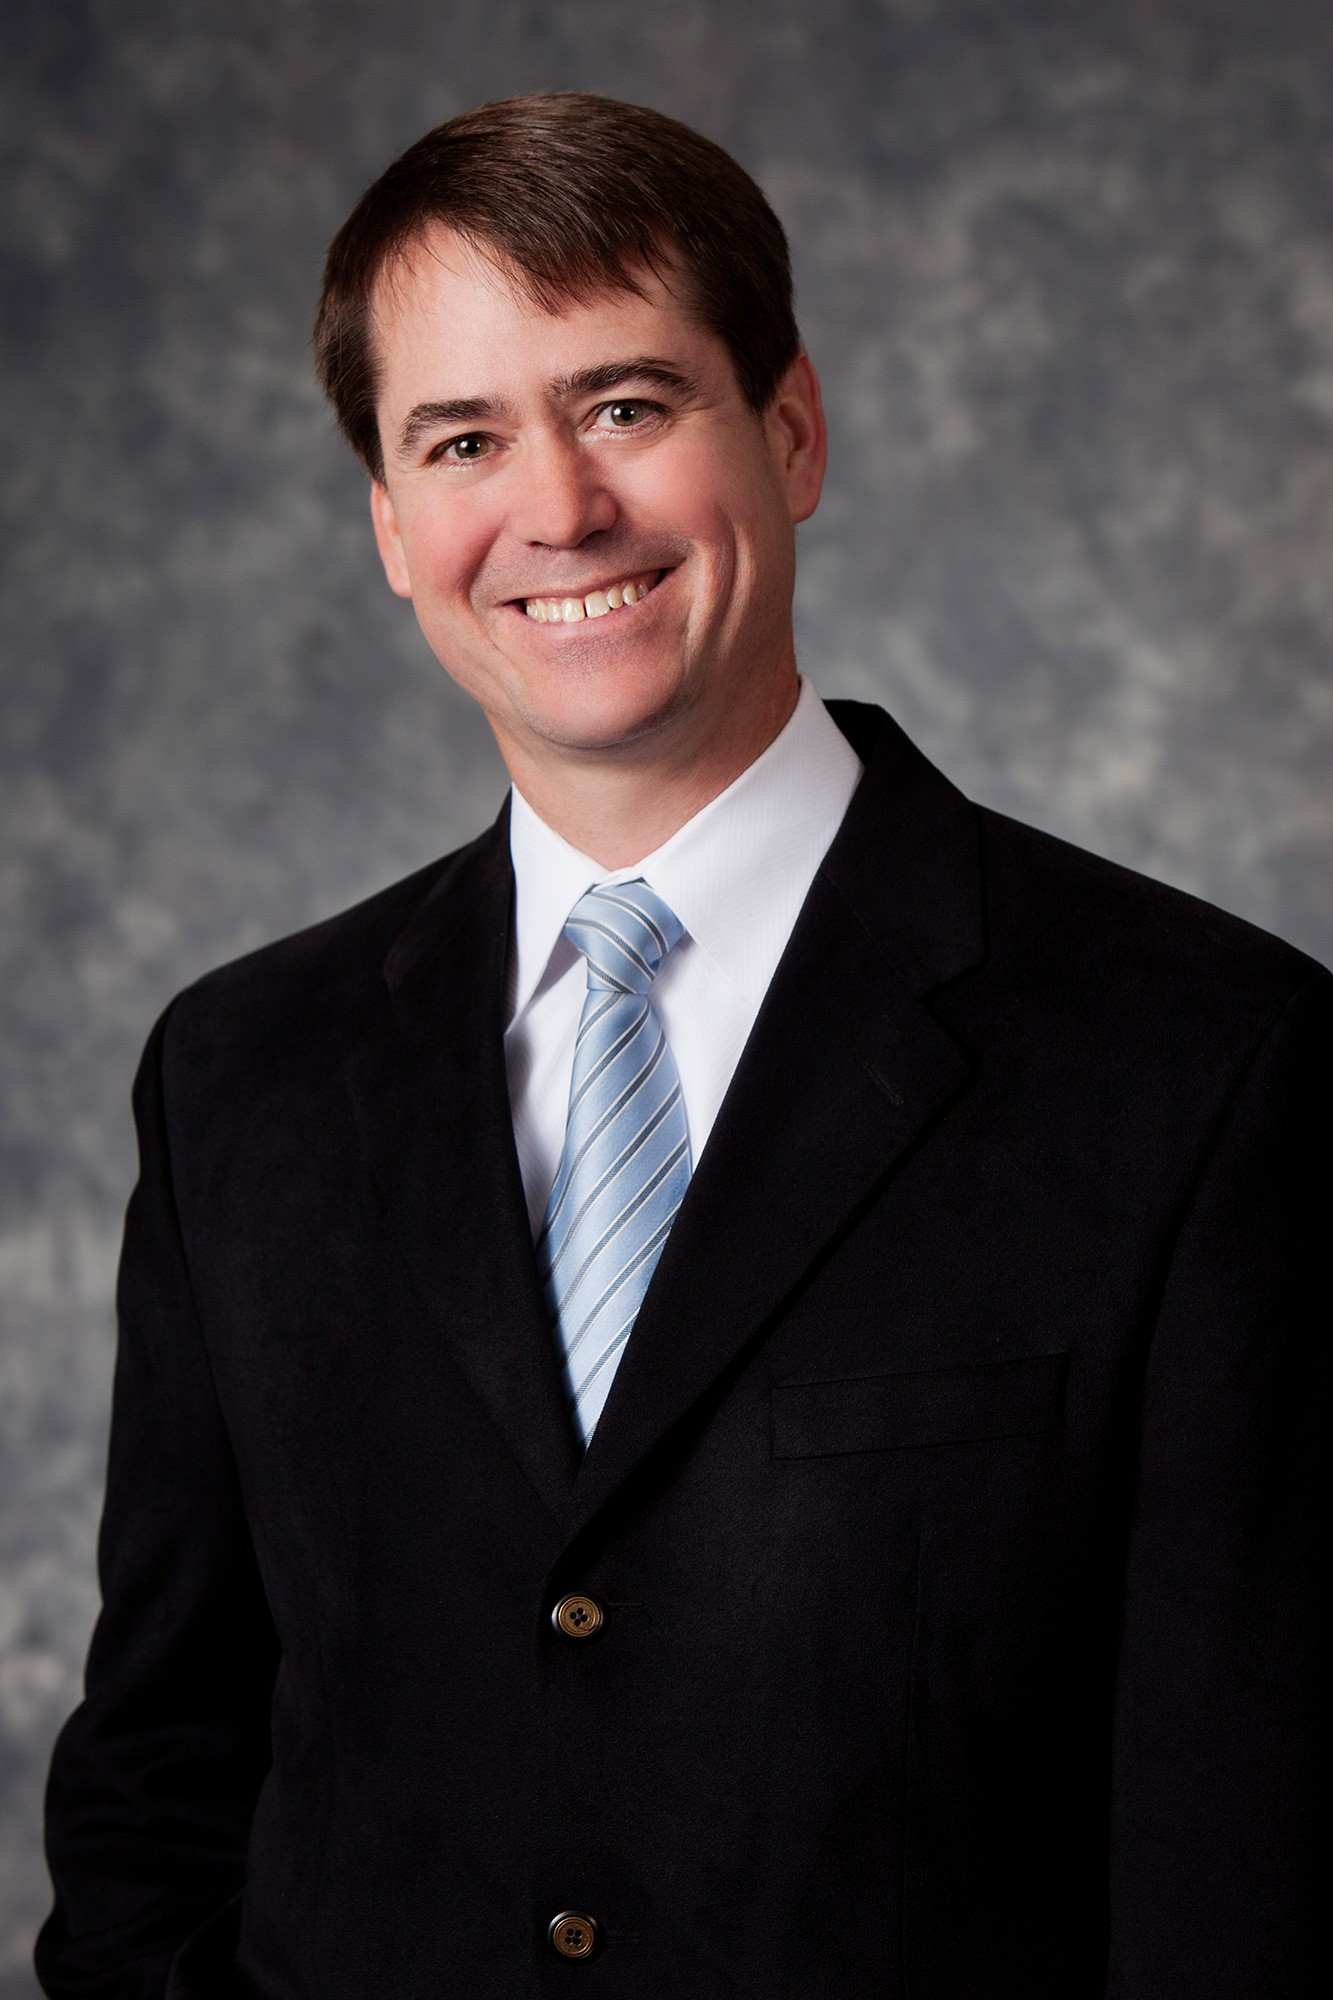 Photo of Mark L. Lesh, M.D.